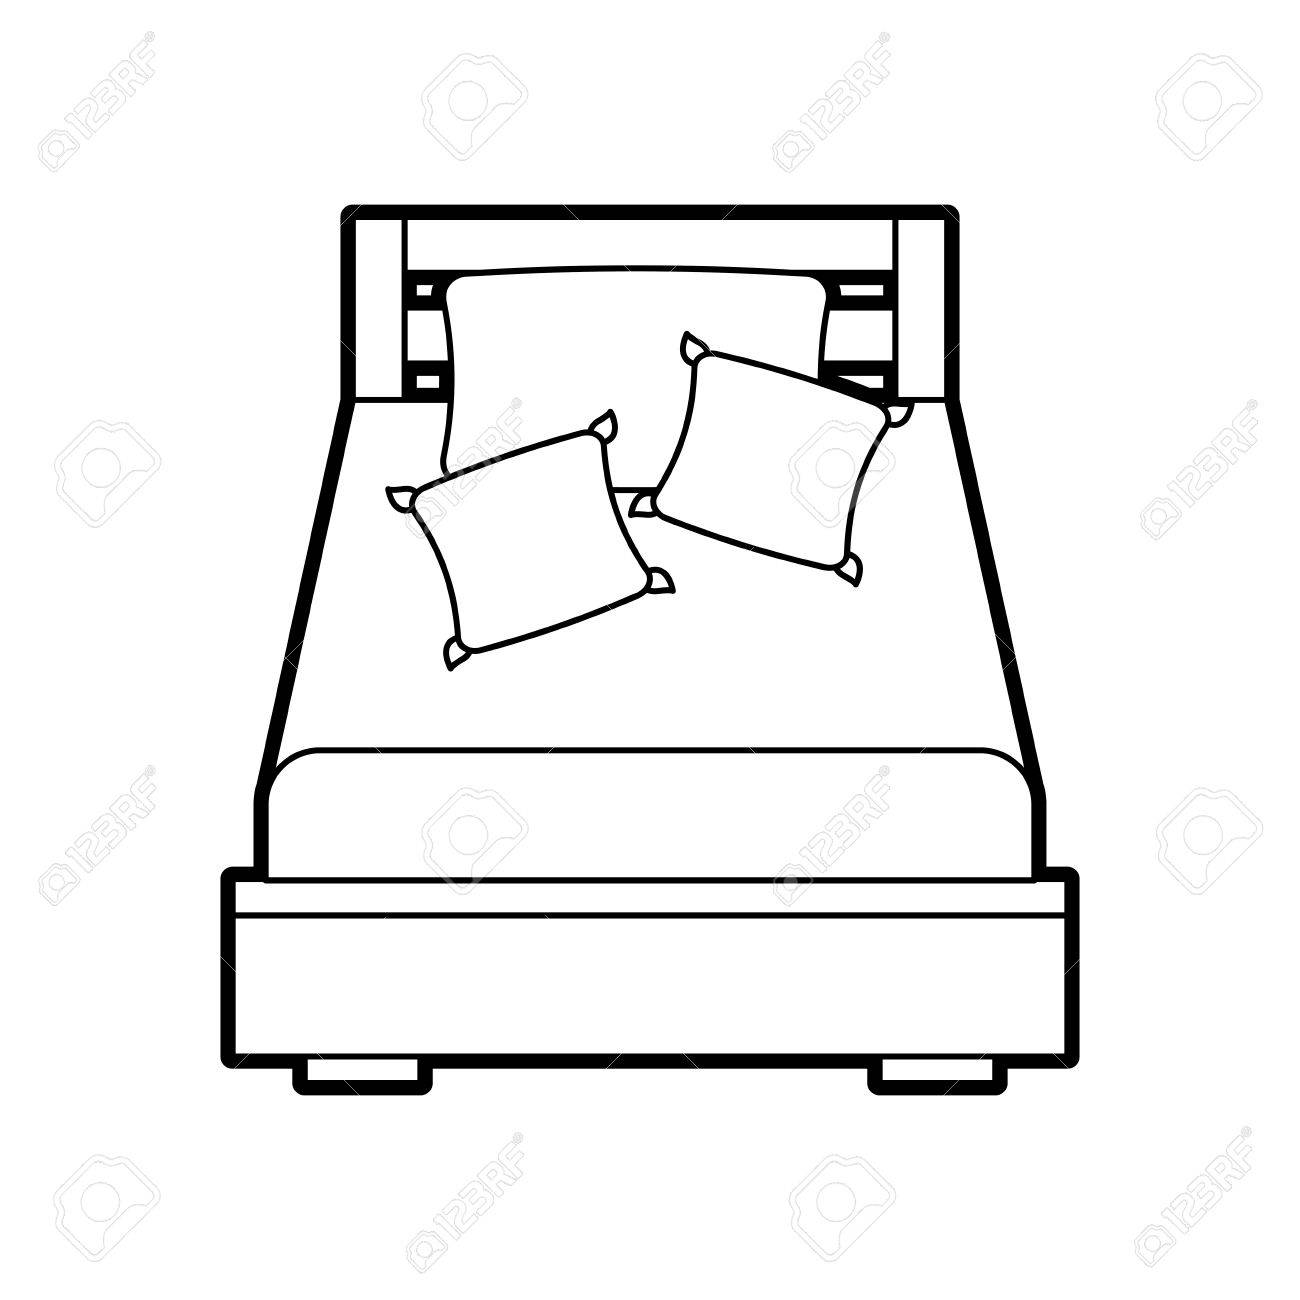 wooden bed with pillow blanket furniture room vector illustration